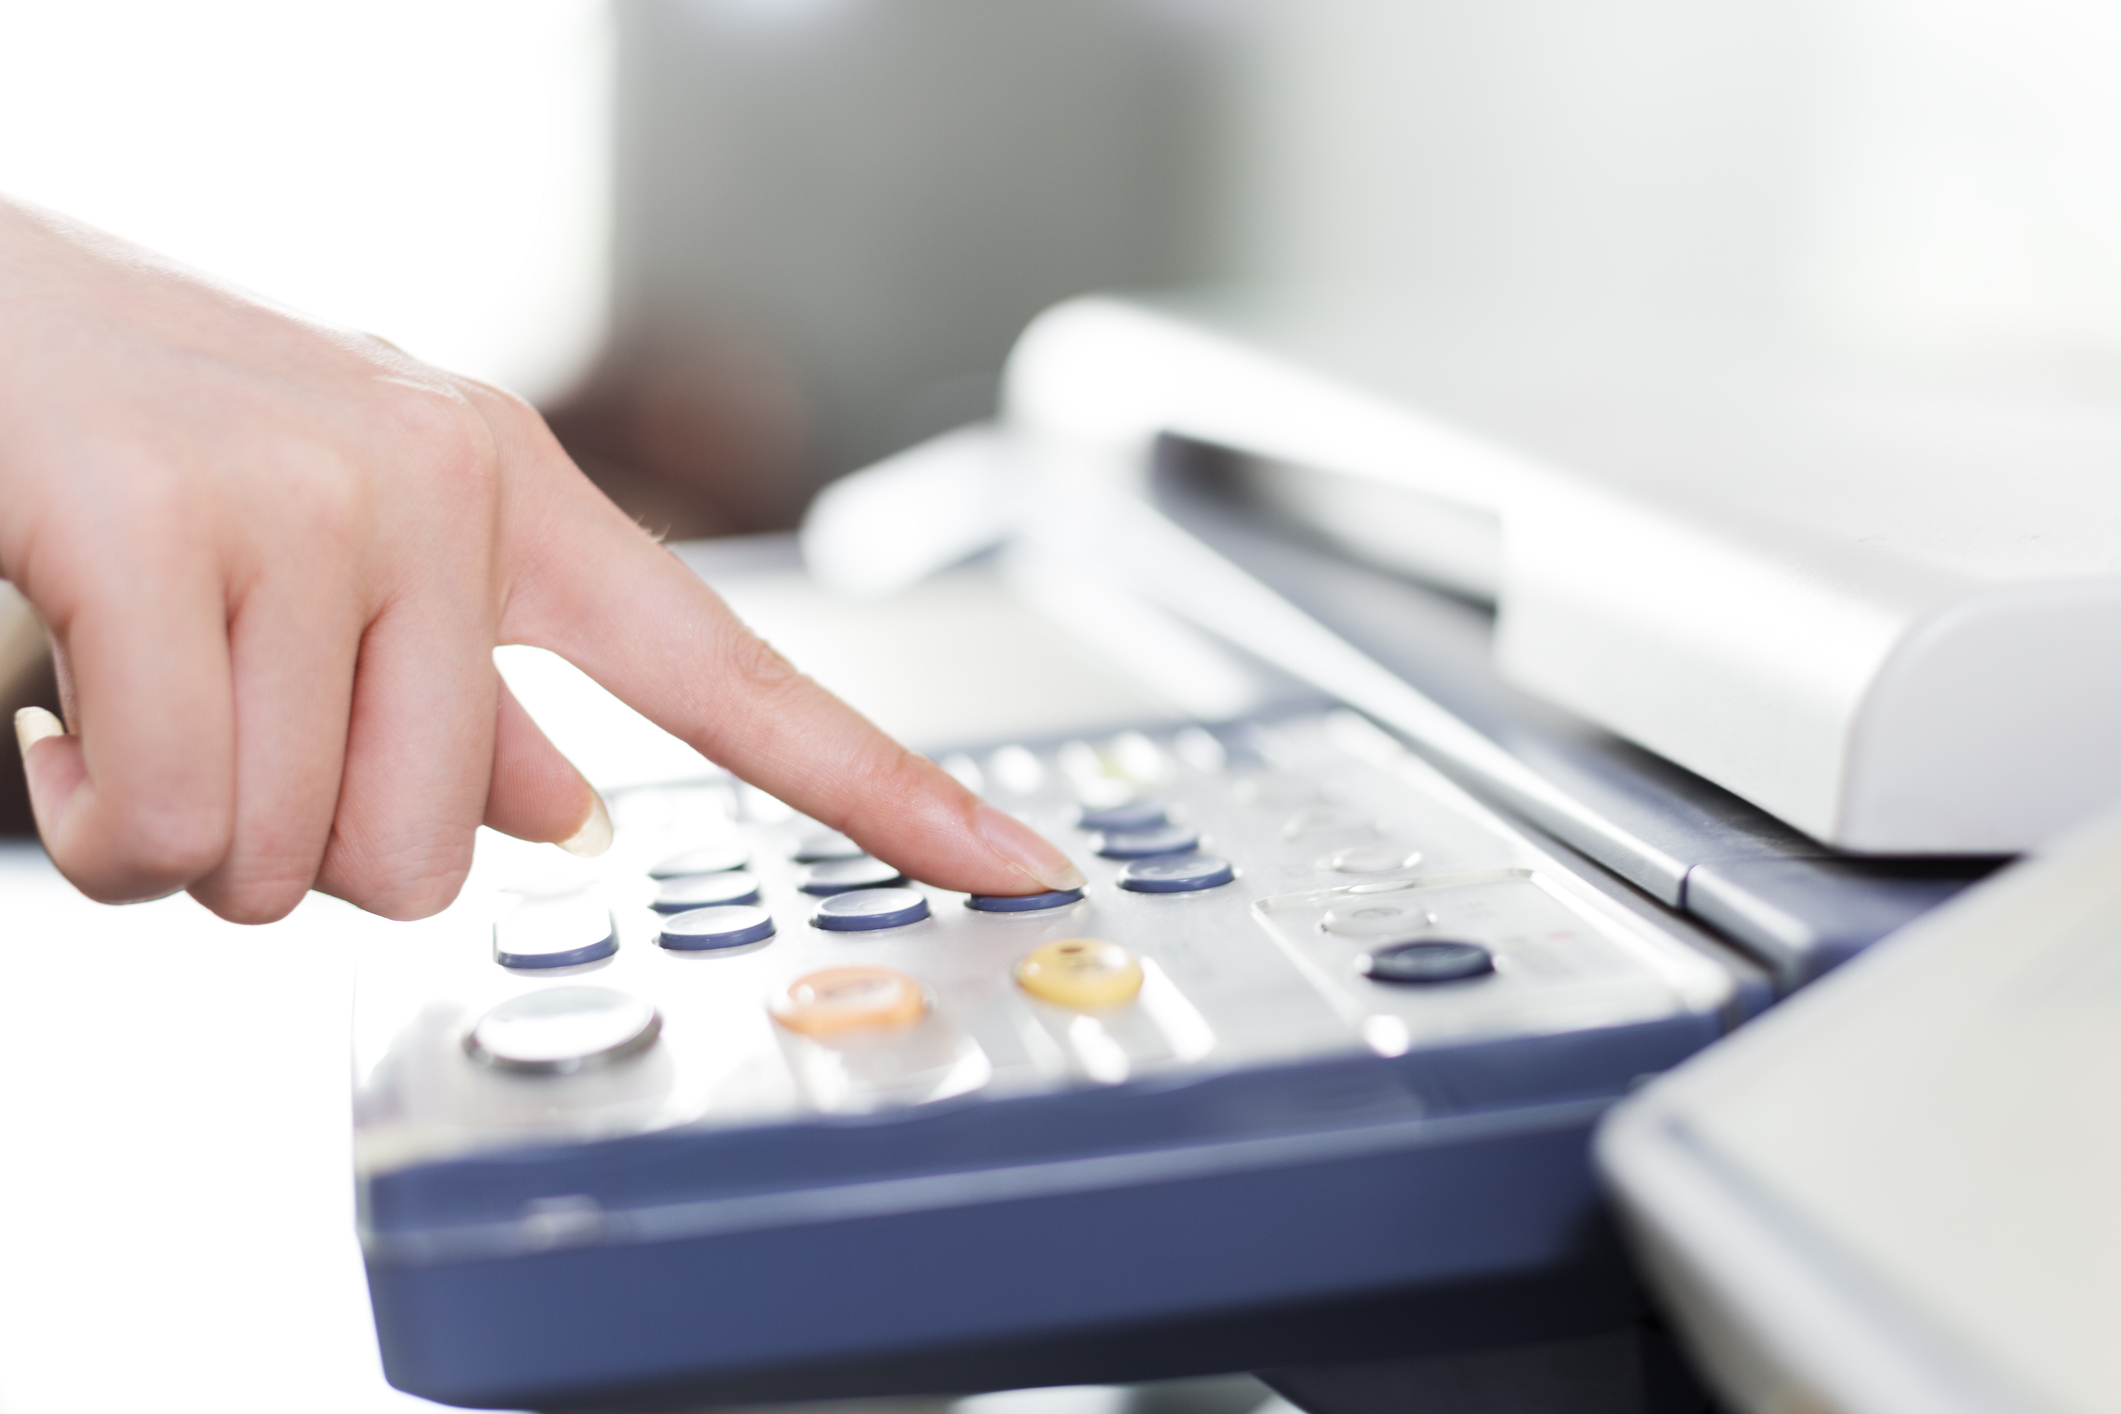 Back to Basics: How to Change the Password on Your Multifunction Printer (MFP)